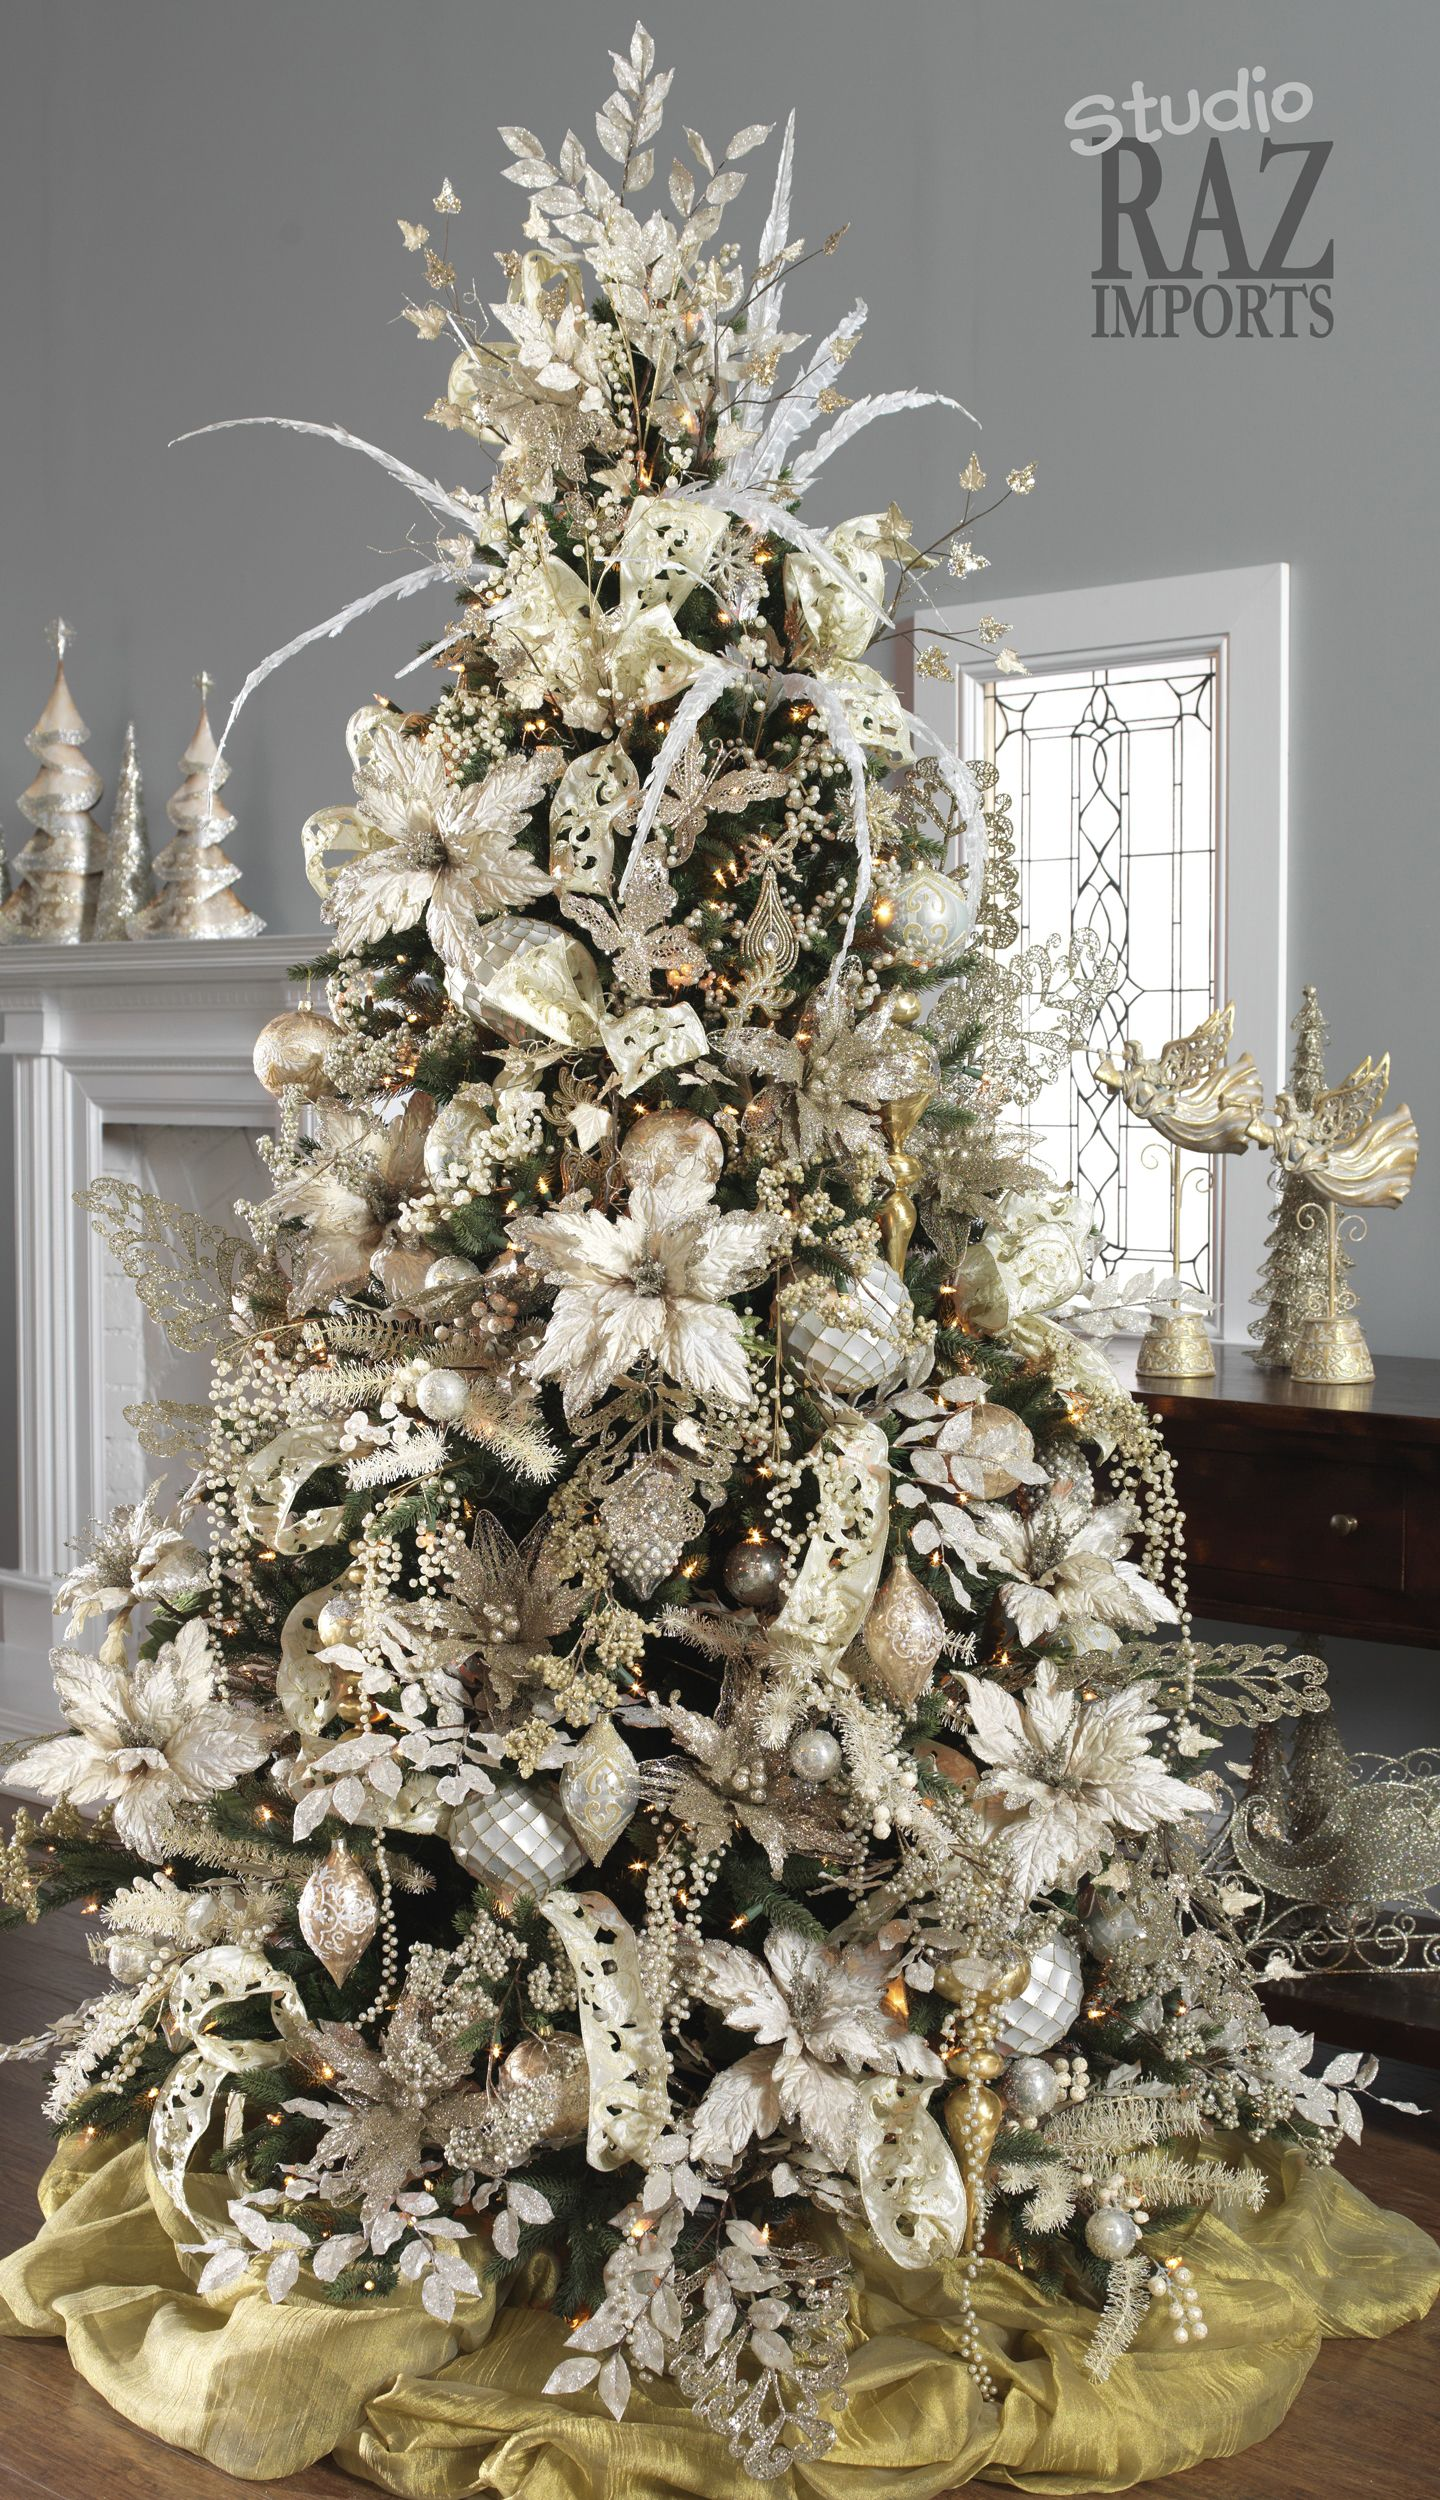 37 inspiring christmas decorating ideas shown white christmas tree ala winter wonderland decoholic - Winter Wonderland Christmas Decorating Ideas